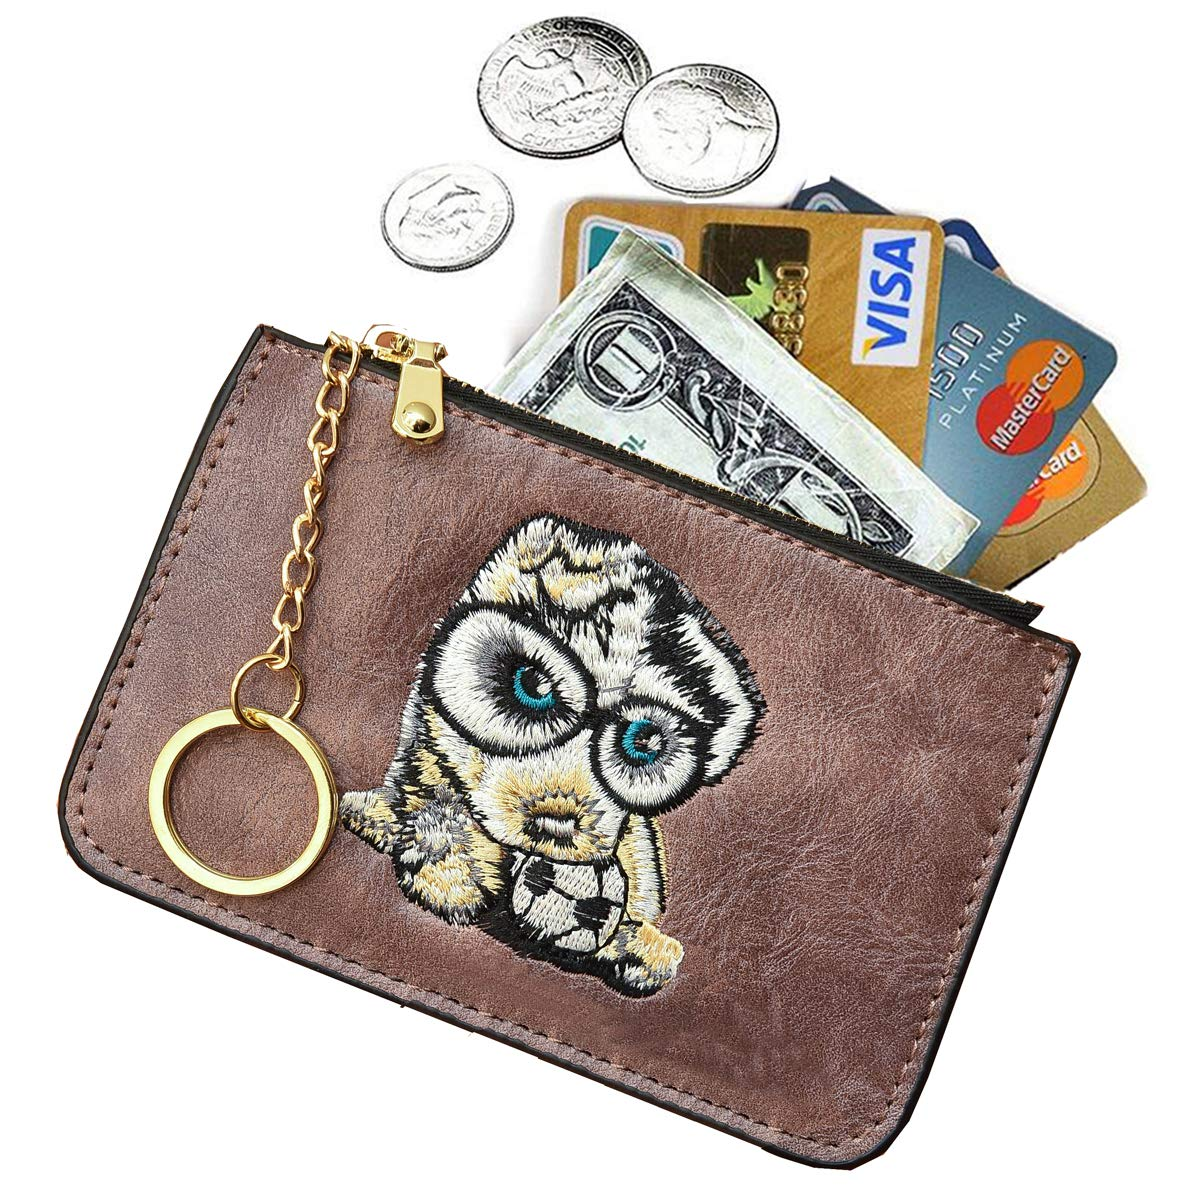 AnnabelZ Women's Coin Purse Change Wallet Embroidery Pouch Leather Card Holder with Key Chain Zip (Z-Purple Embroidery)